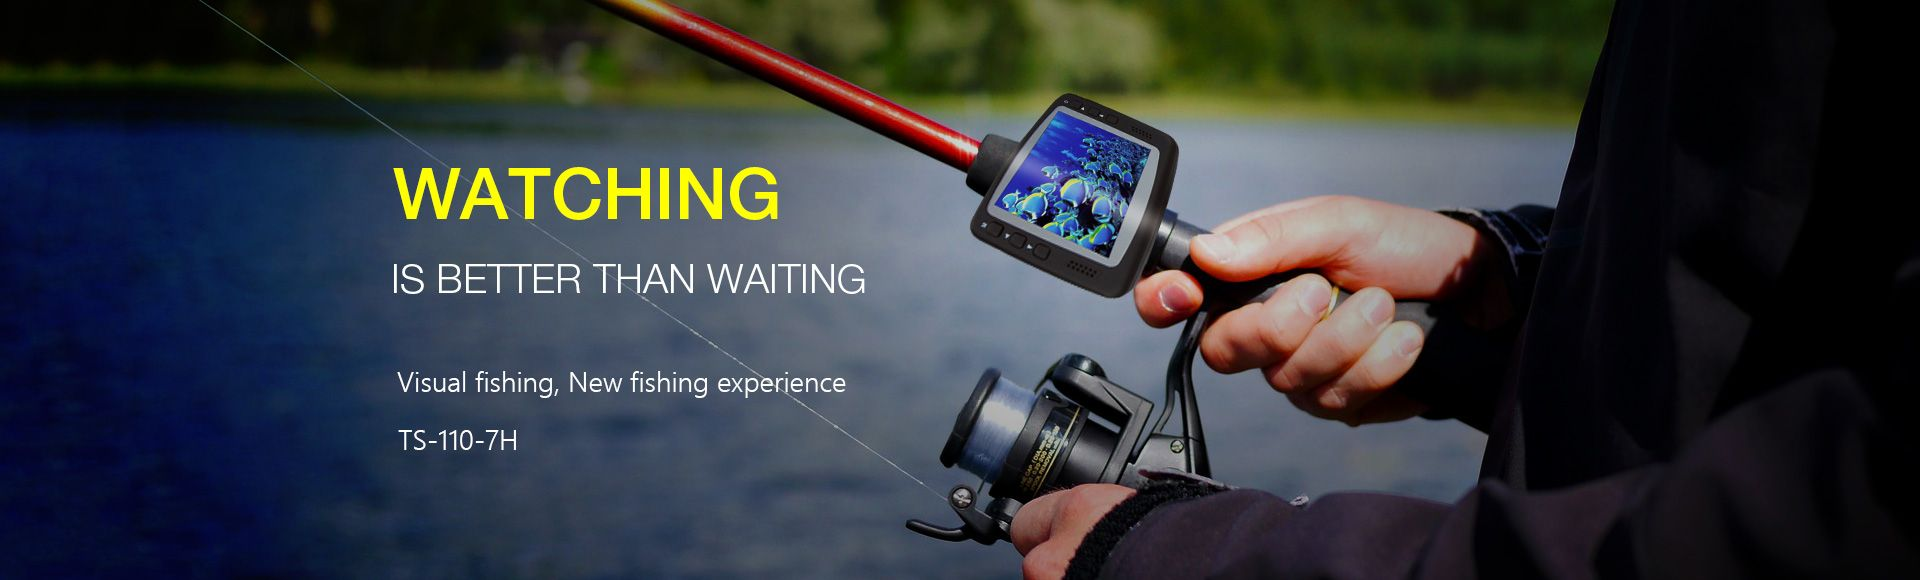 Saful Intelligent Surveillance Cameras Fishing Suits - Watching is better than waiting Offering you a different fishing experience